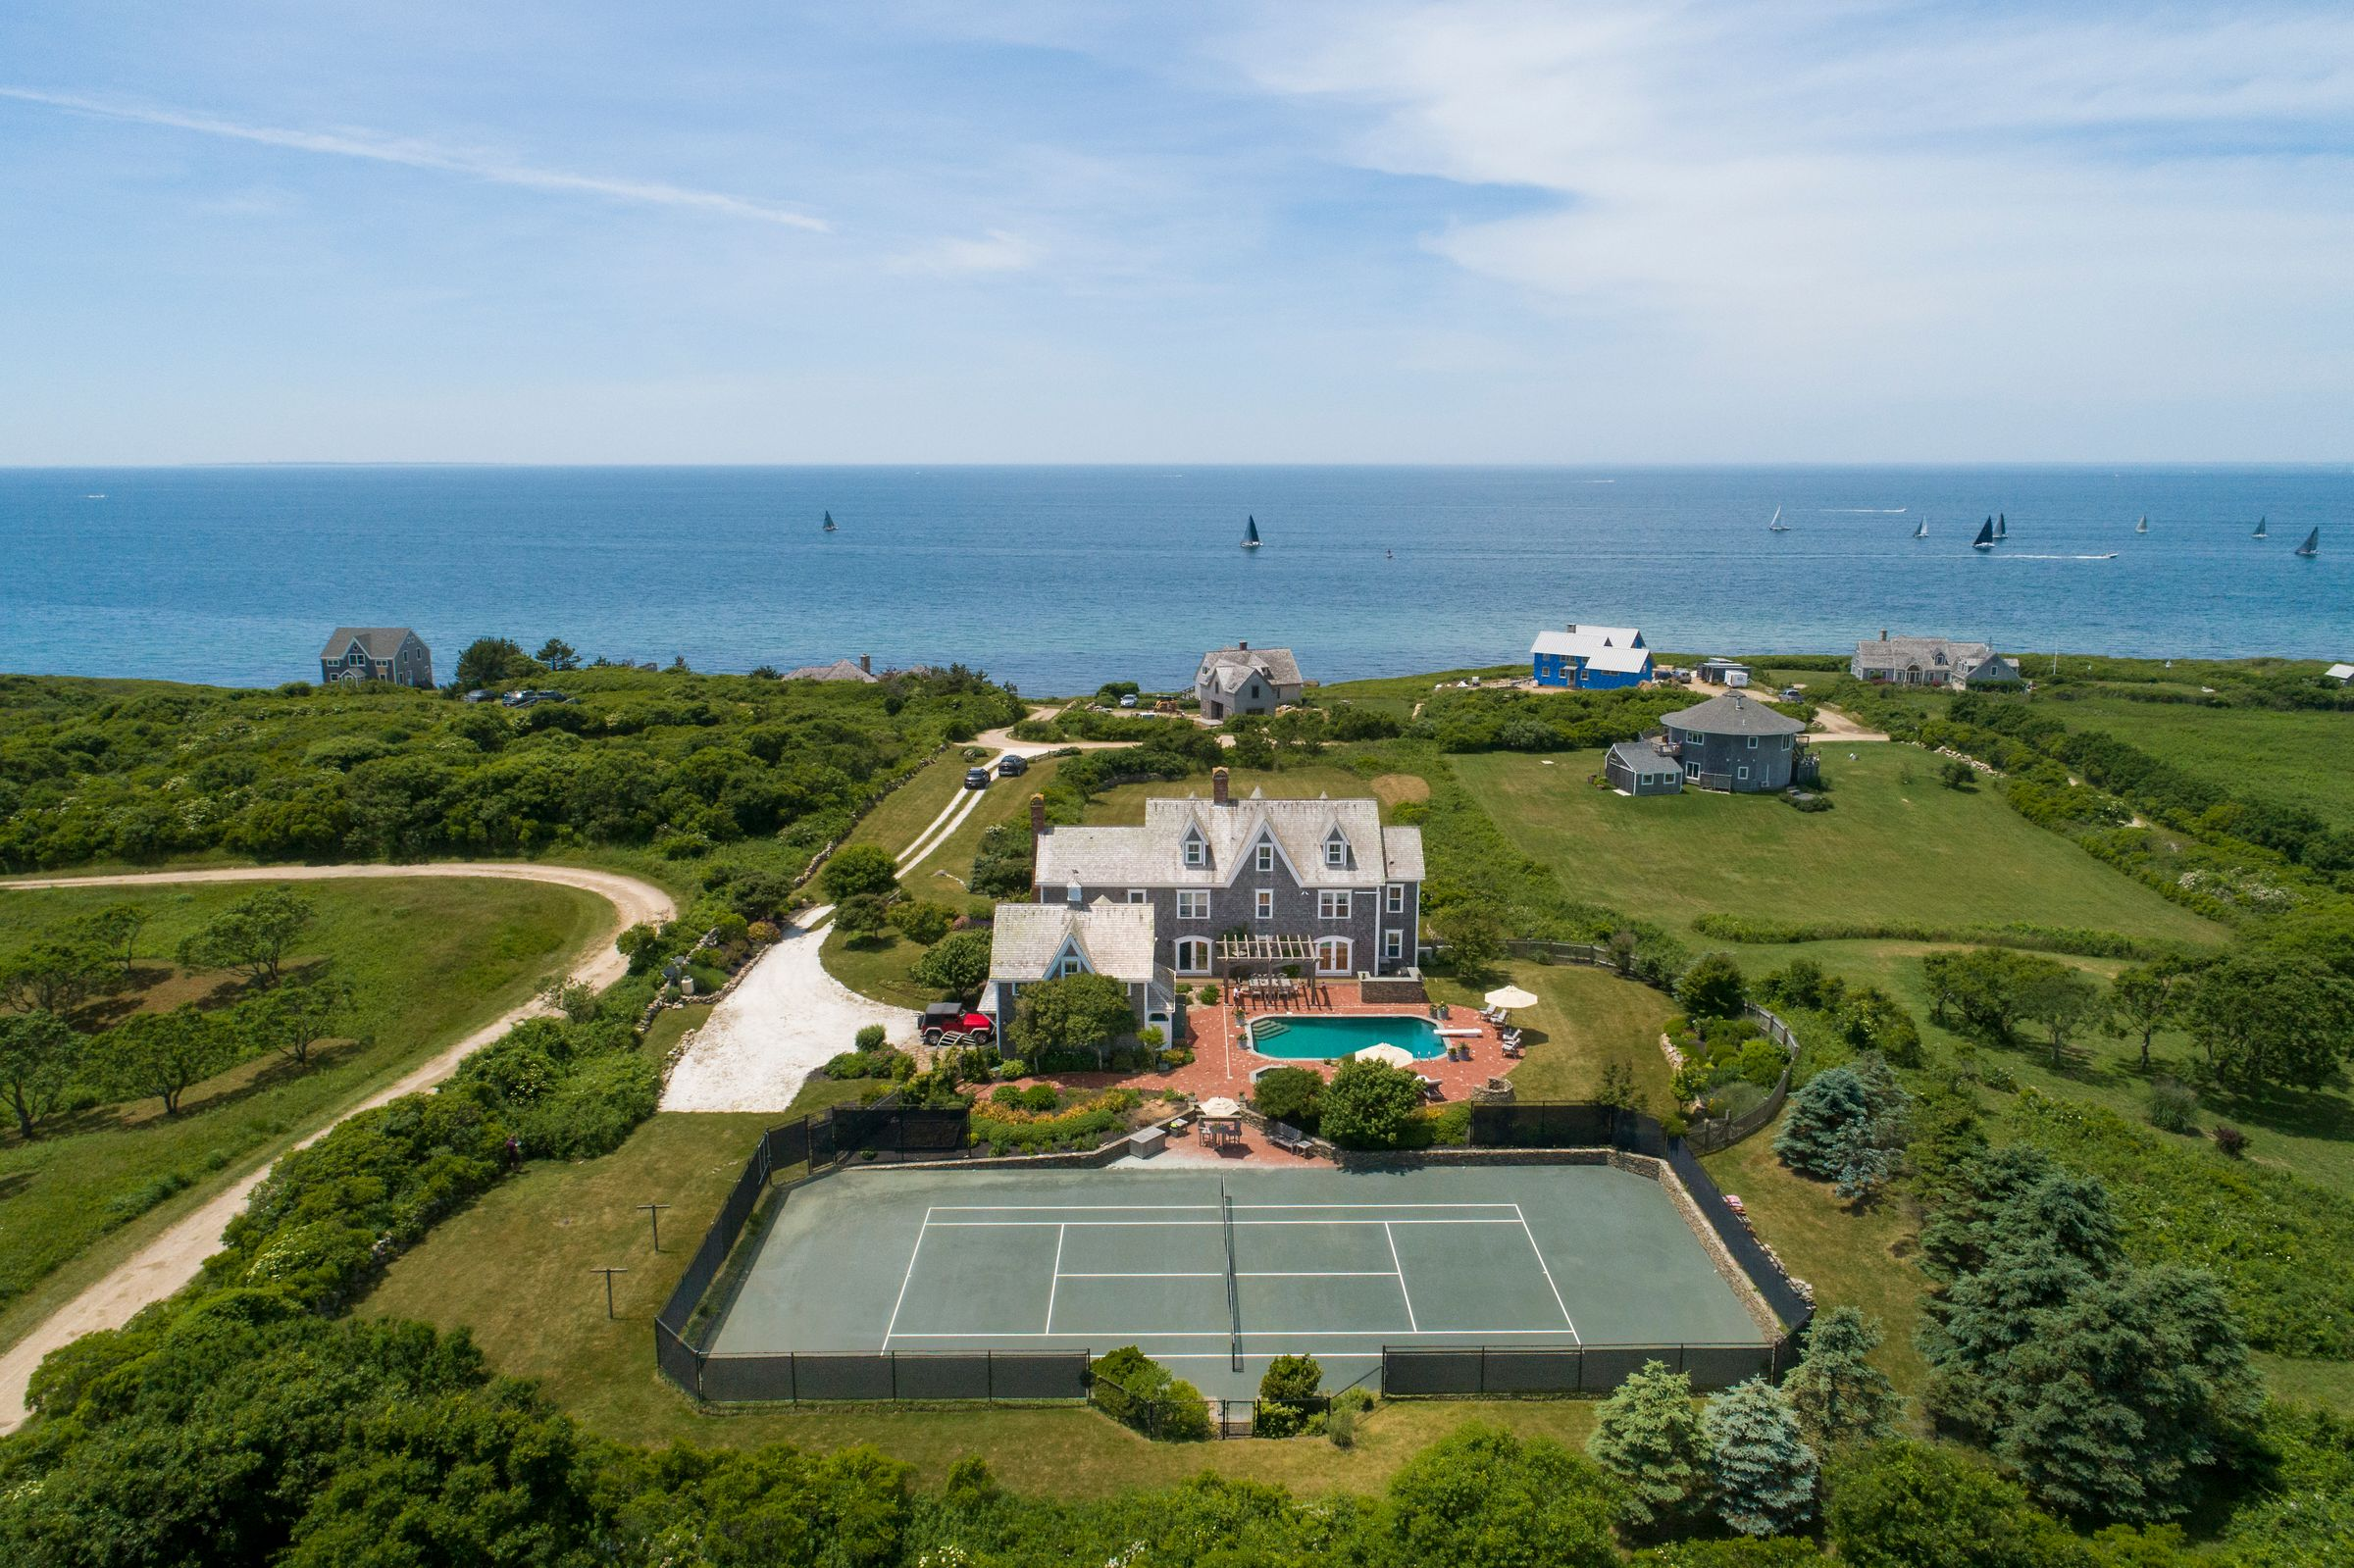 LILA DELMAN COMPASS SELLS BLOCK ISLAND COASTAL COMPOUND MARKING THE HIGHEST SALE ON THE ISLAND YEAR-TO-DATE*